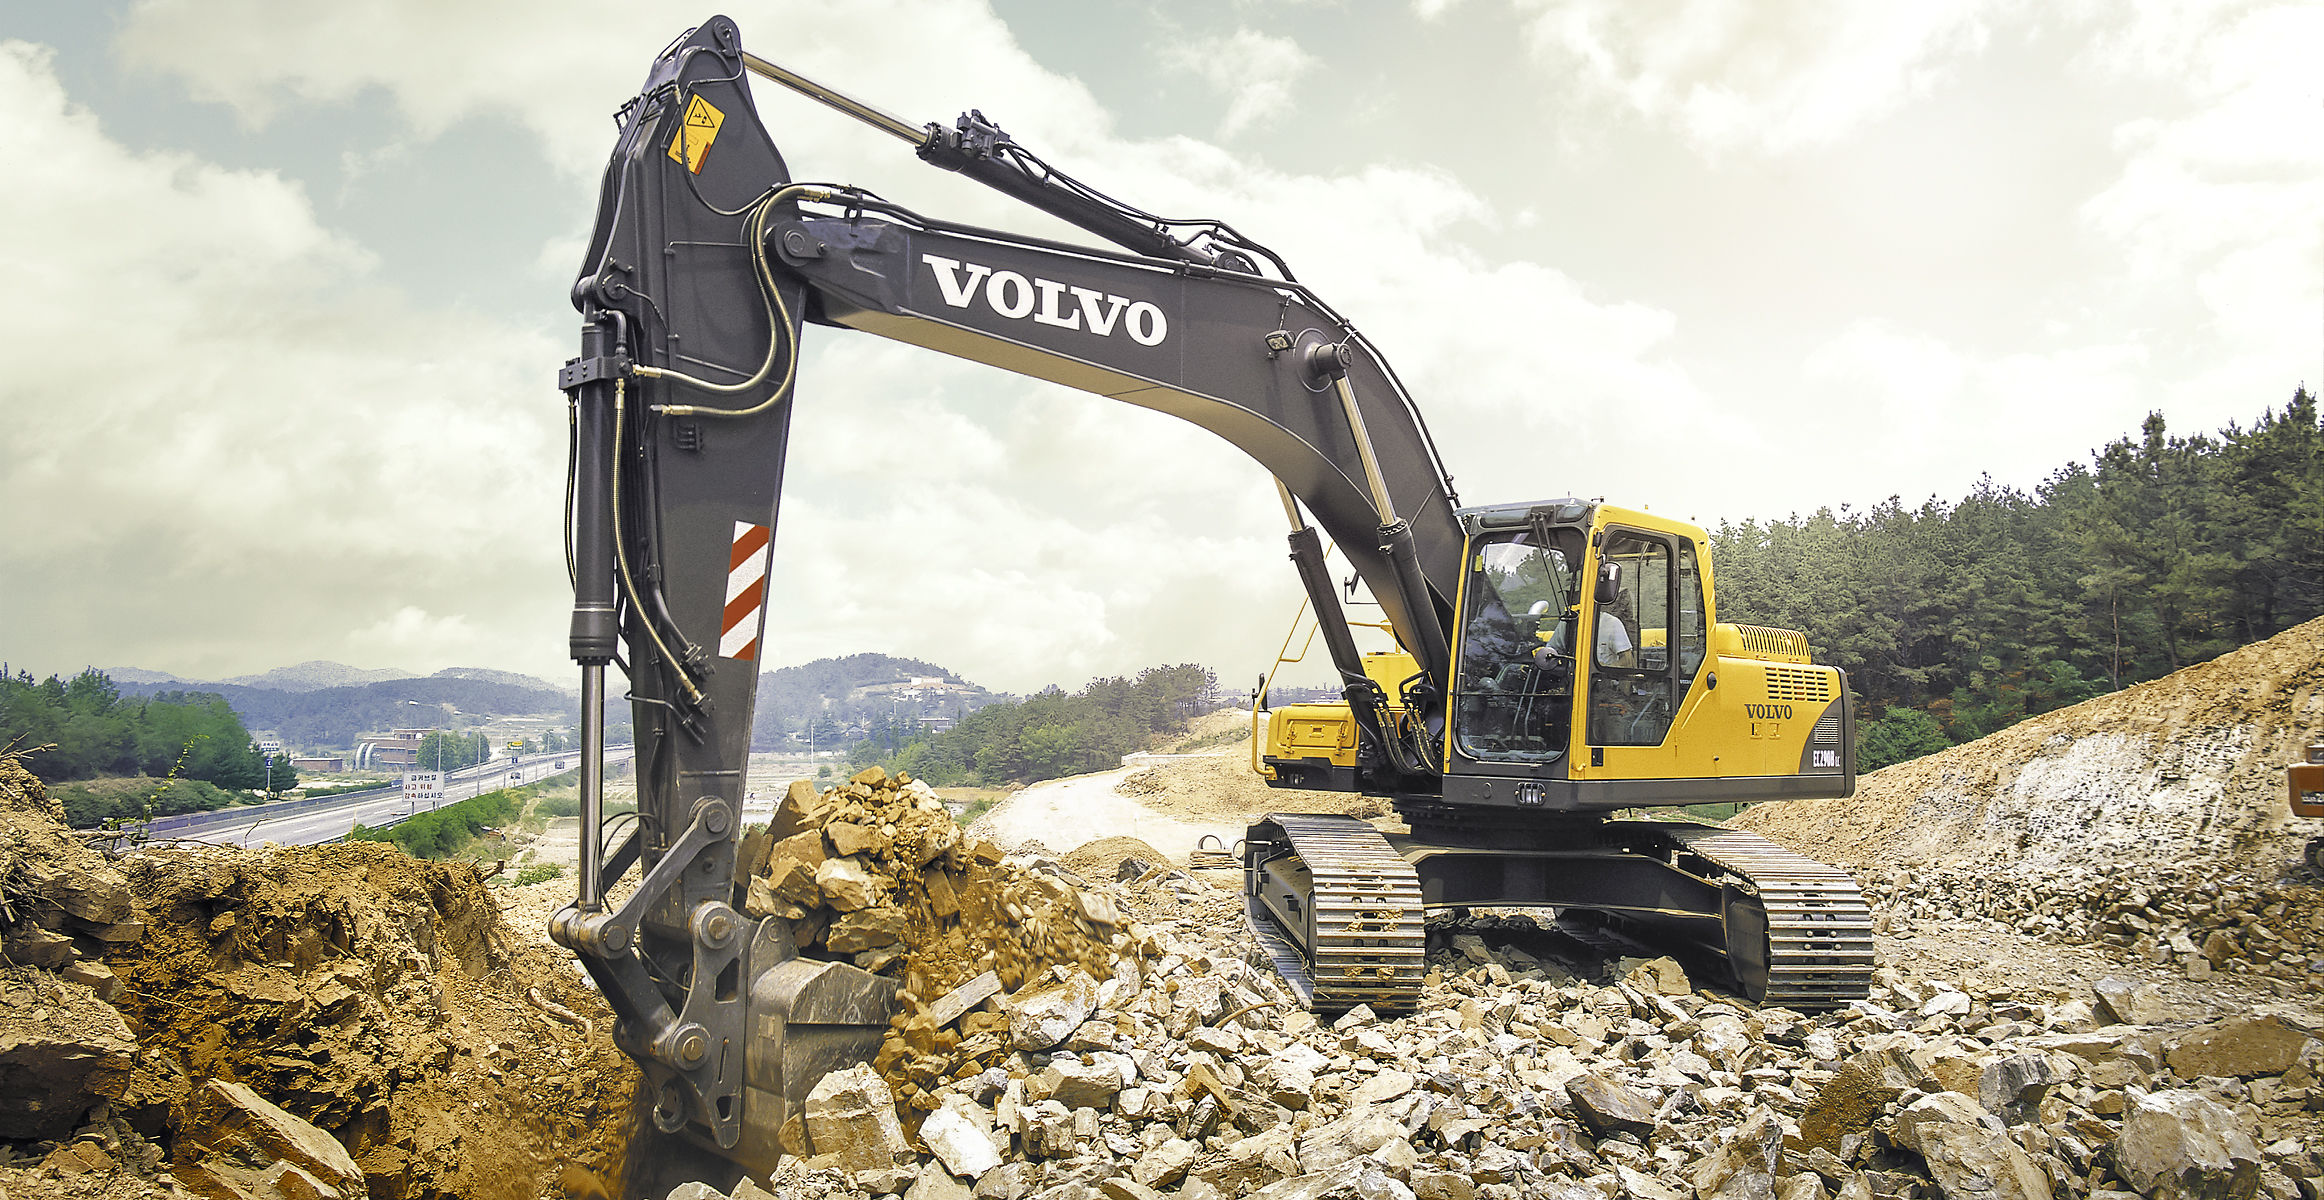 ec290b prime crawler excavators overview volvo. Black Bedroom Furniture Sets. Home Design Ideas